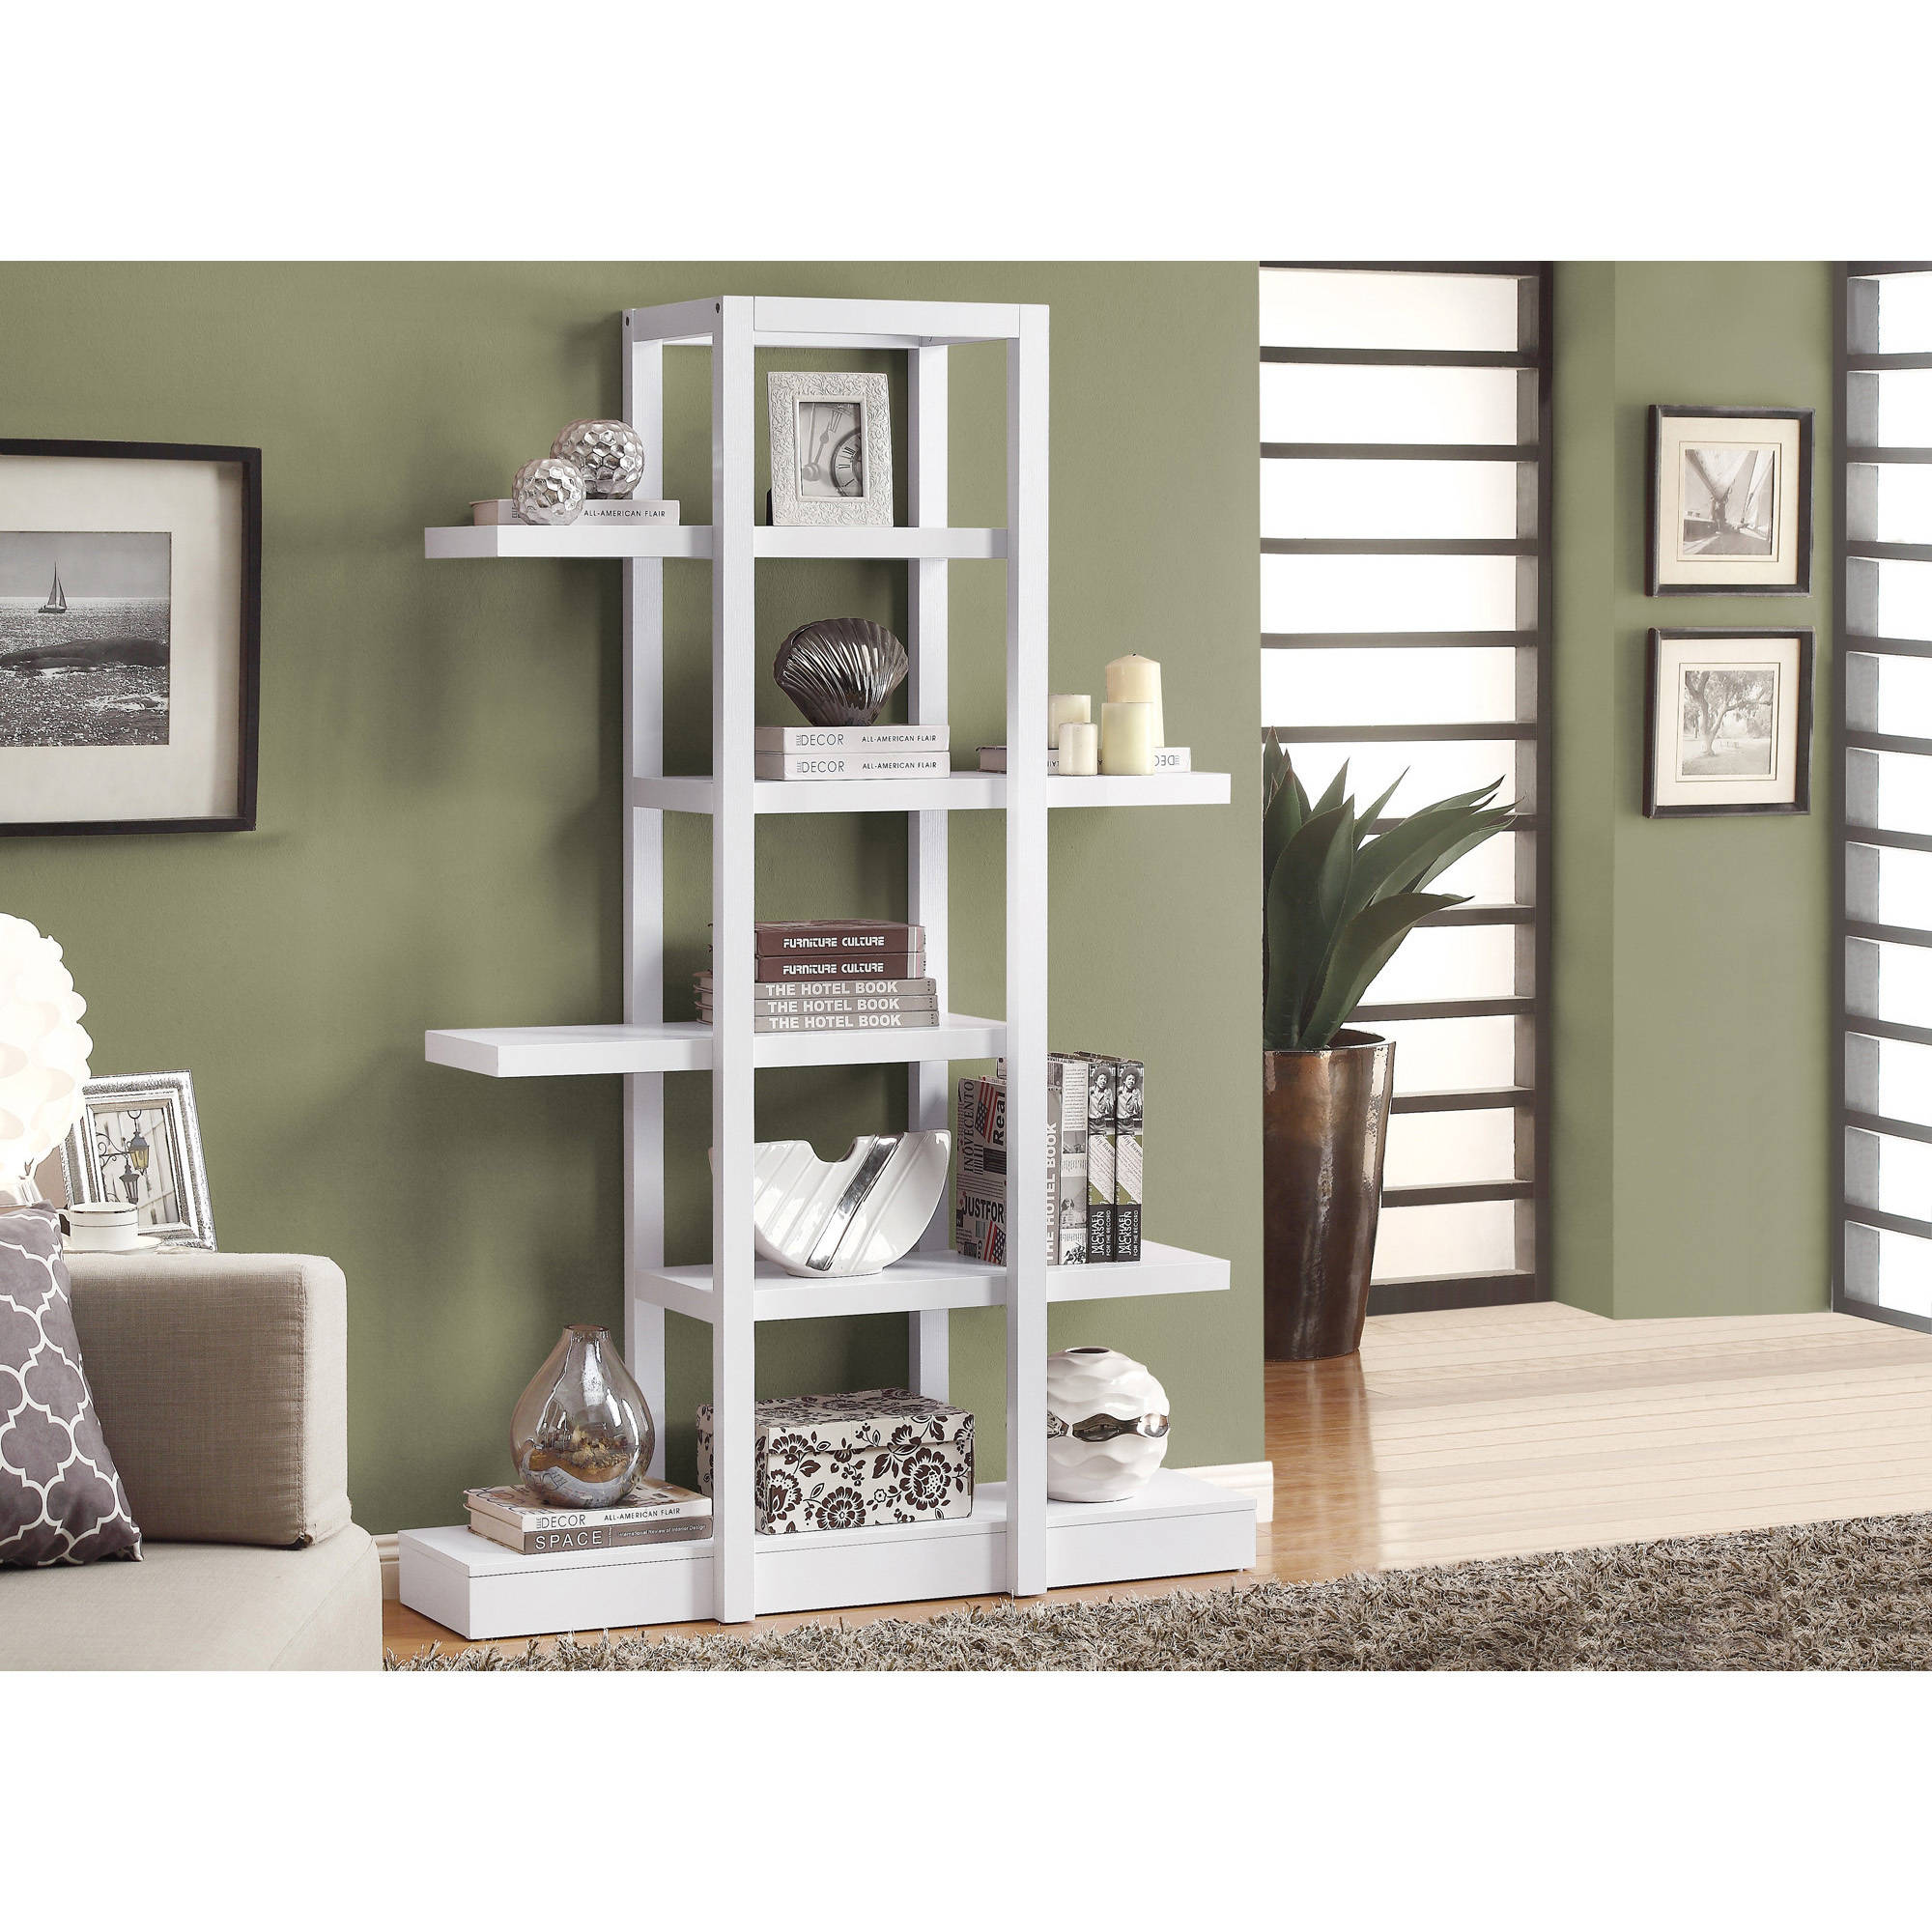 monarch bookcase 71 h cappuccino open concept display etagere